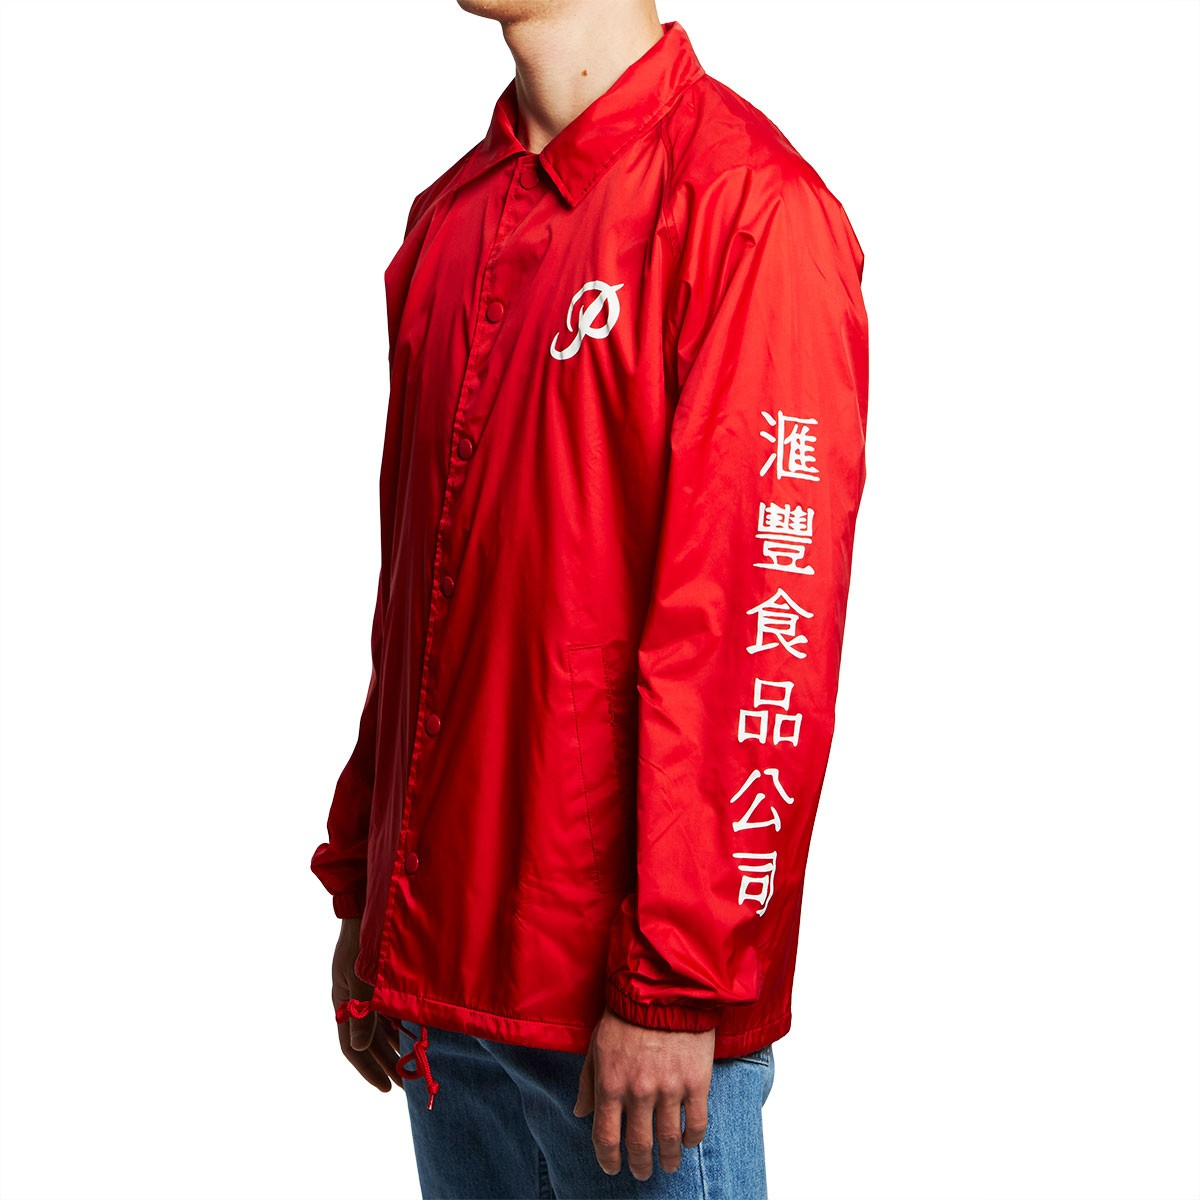 c15c585c1 Primitive X Huy Fong Foods Coaches Jacket - Red